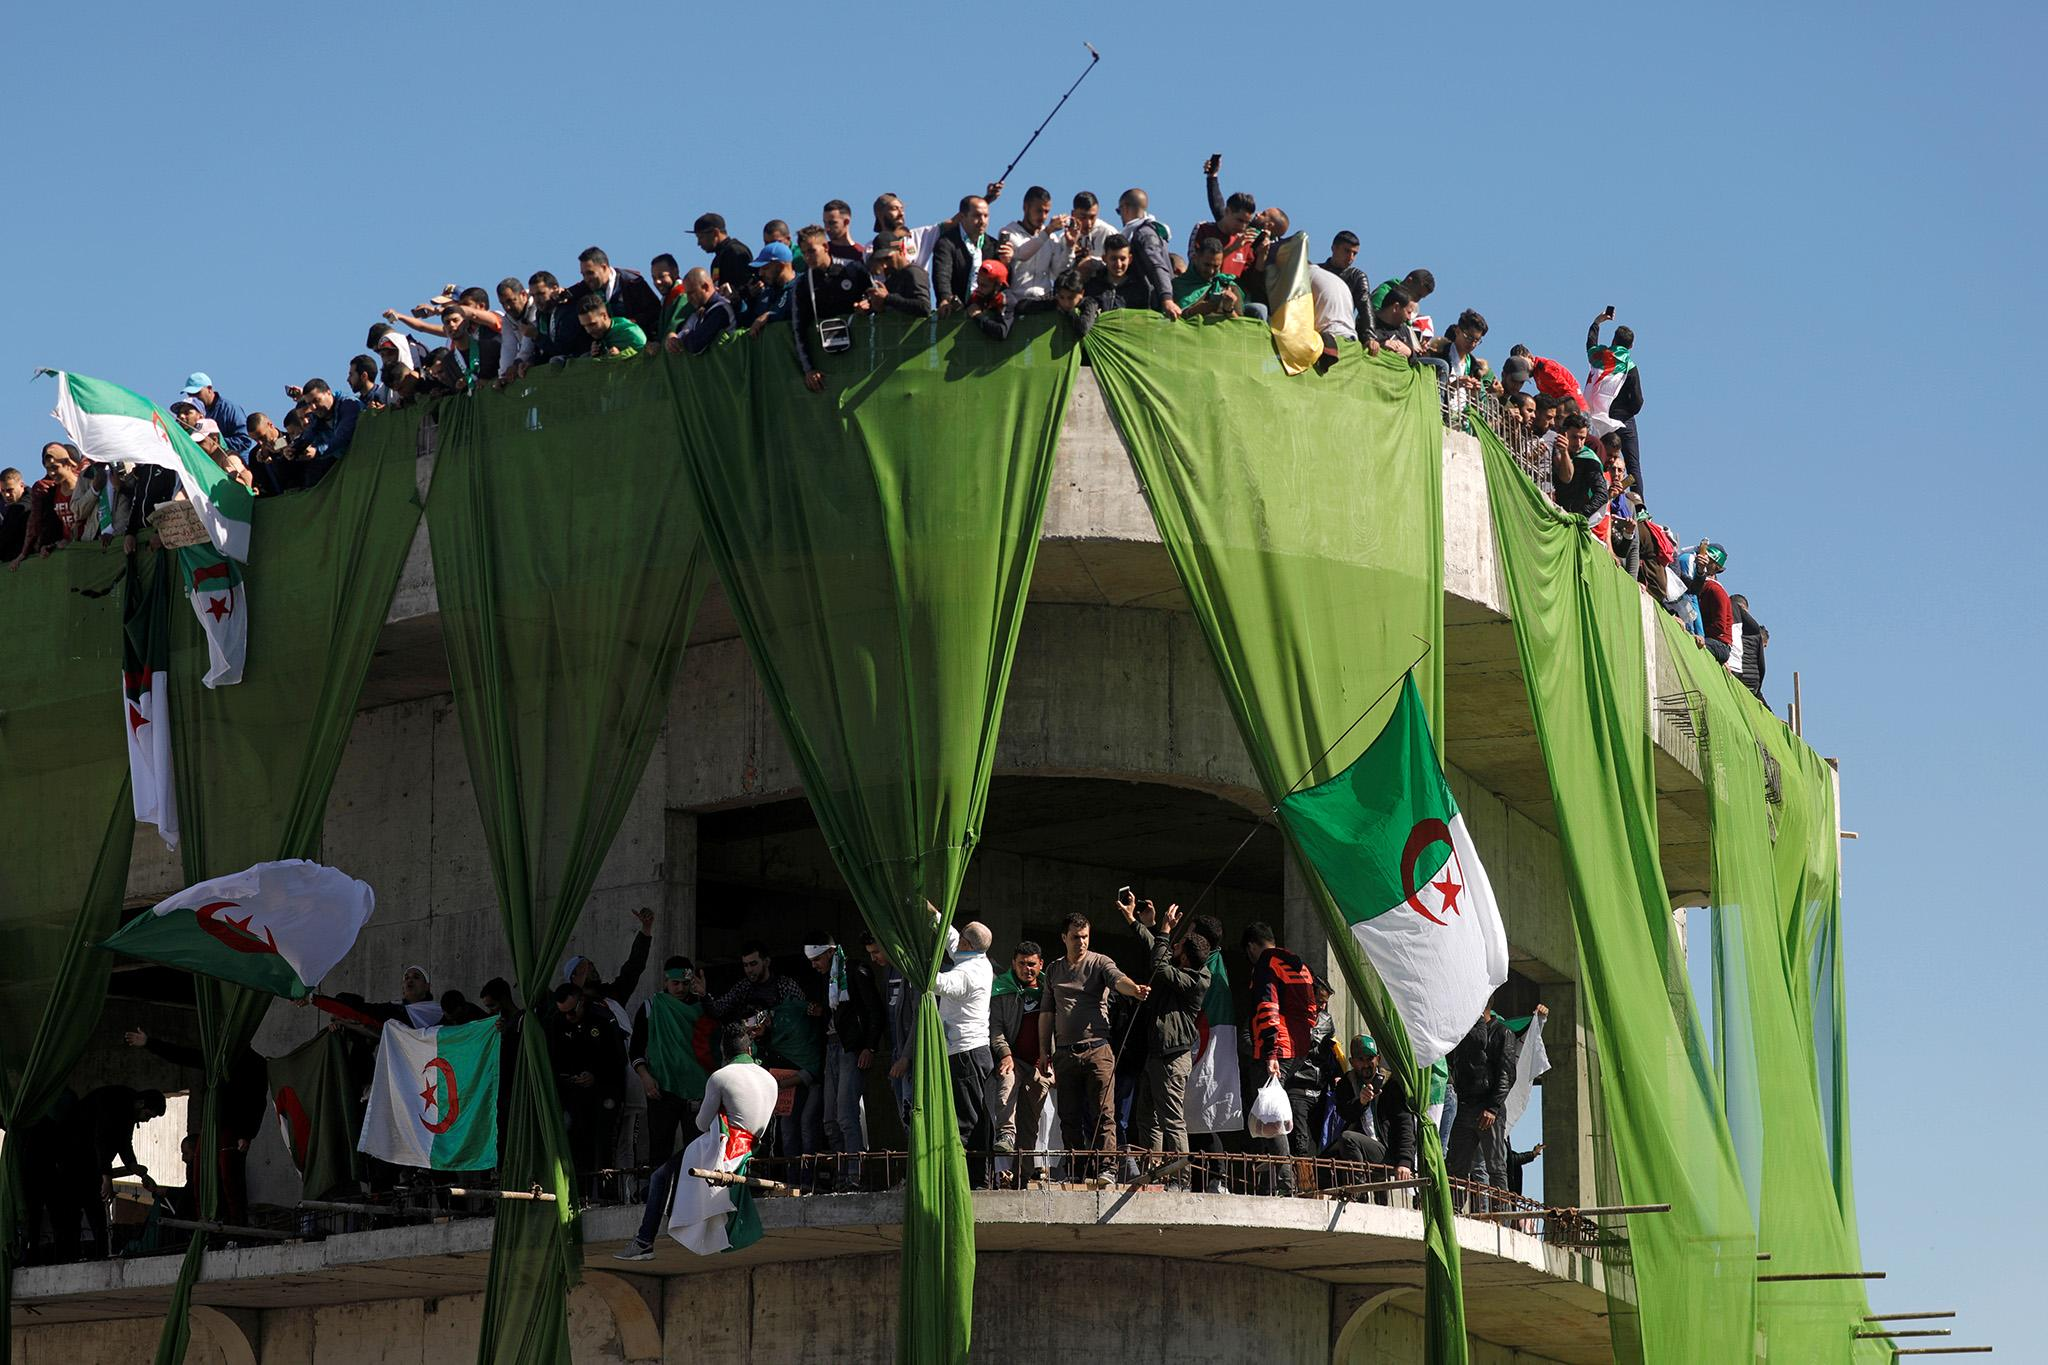 People Vs  Pouvoir: Demonstrators take on Algeria's shadowy